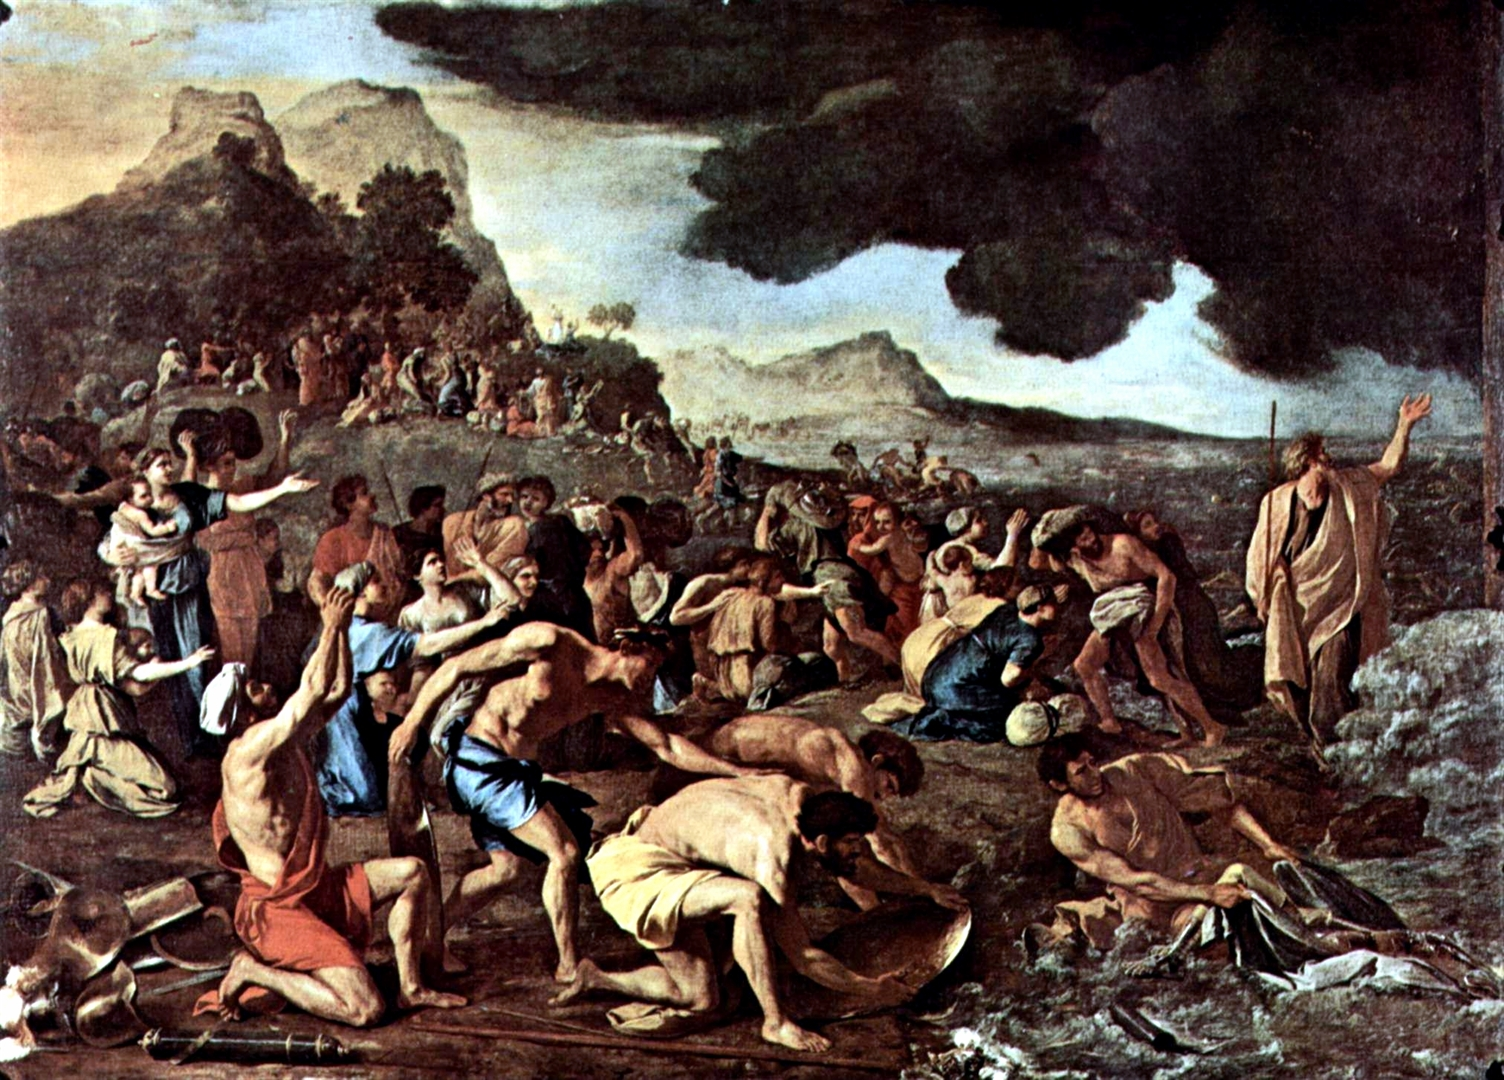 The Crossing of the Red Sea, by Nicholas Poussin